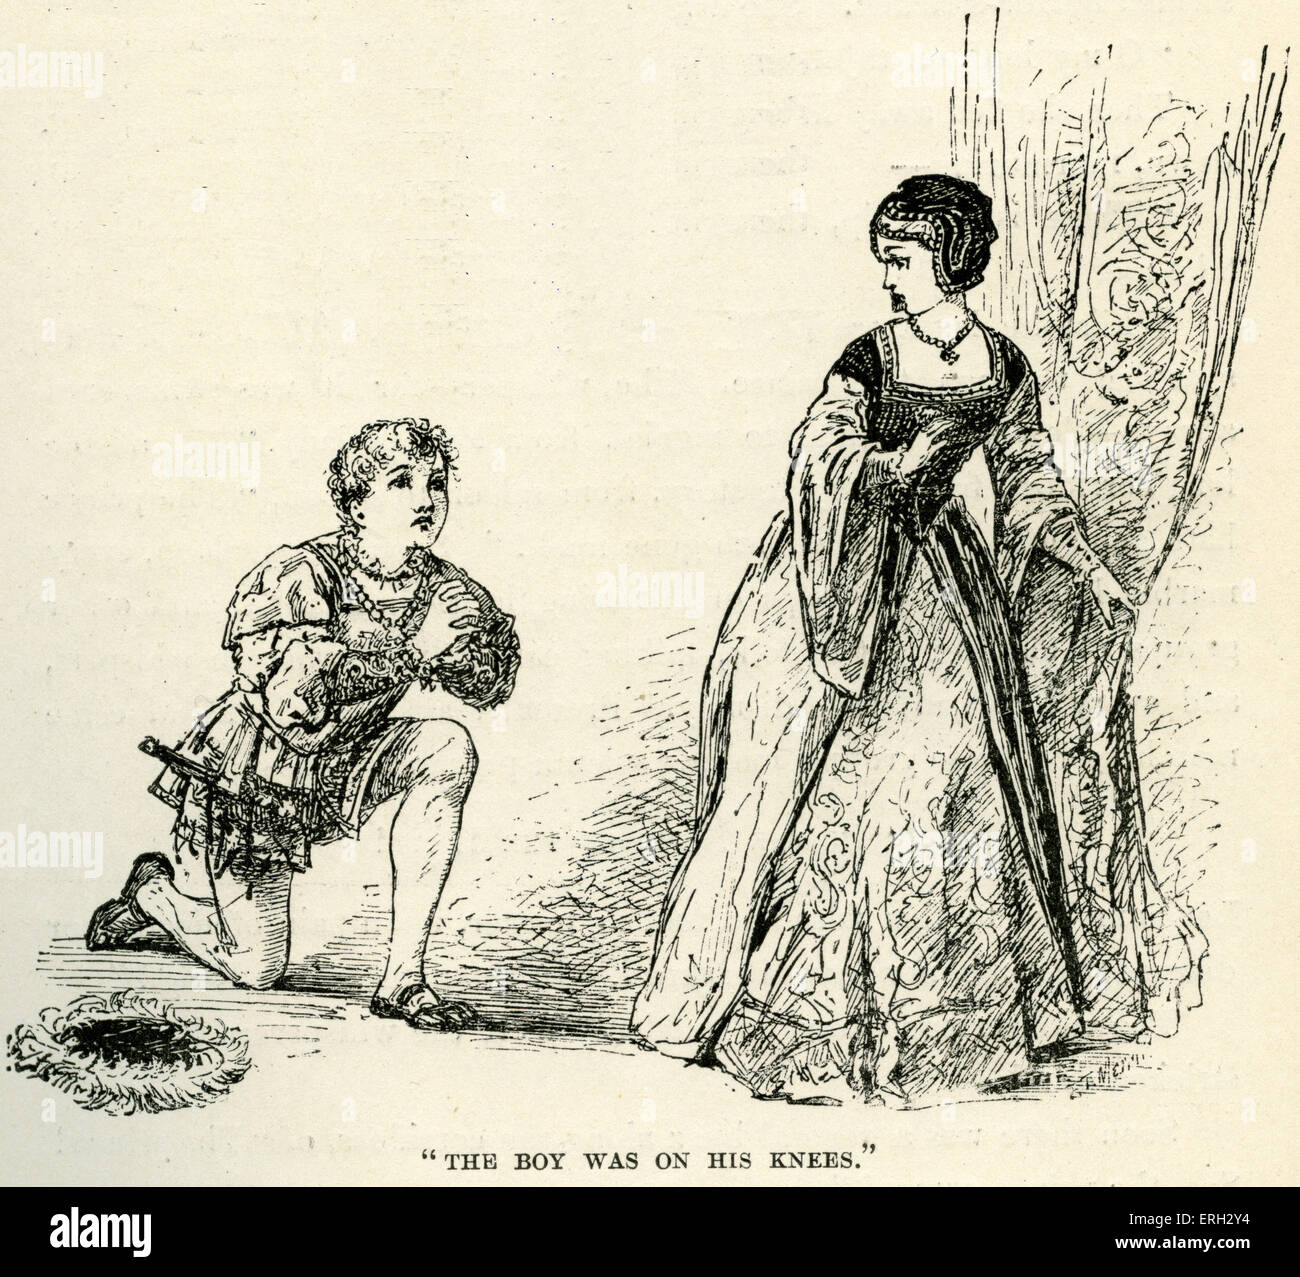 the prince and the pauper twain mark